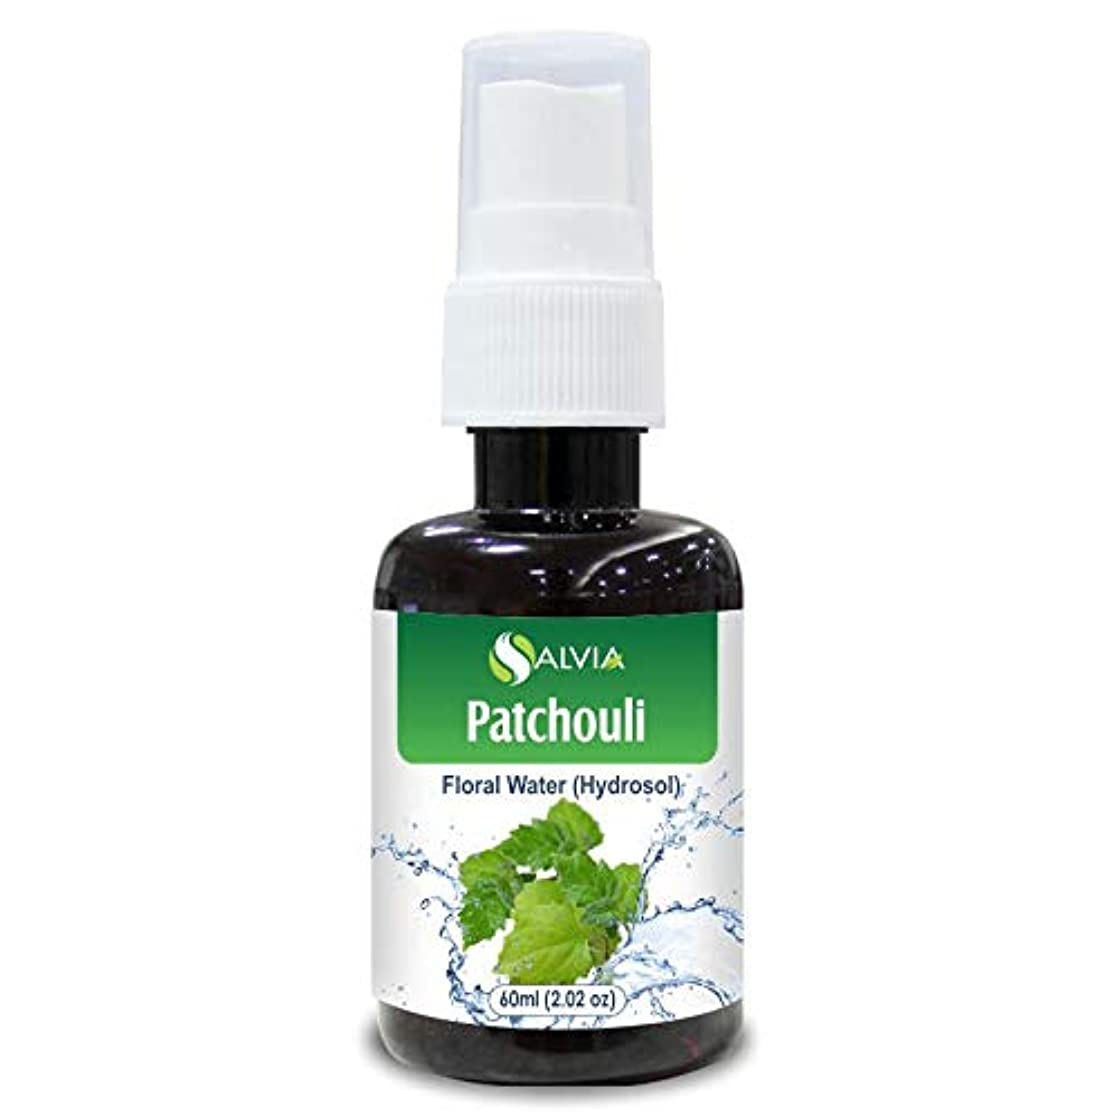 Patchouli Floral Water 60ml (Hydrosol) 100% Pure And Natural